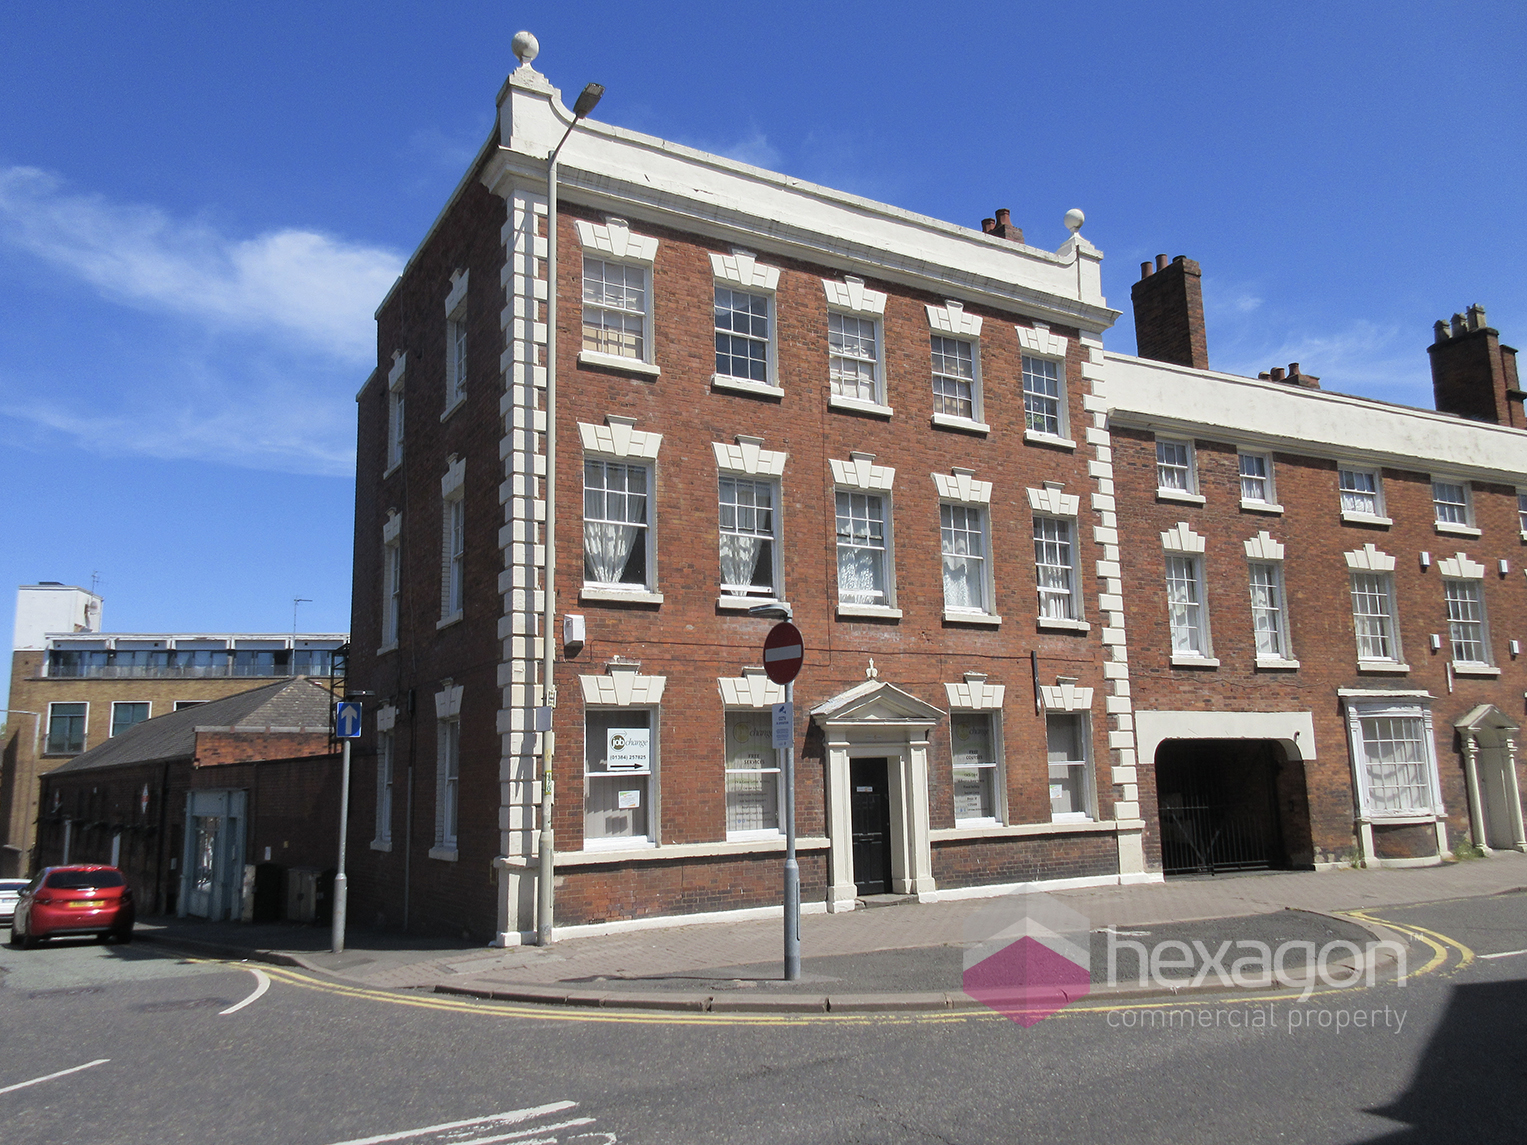 196 Wolverhampton Street Dudley - Click for more details